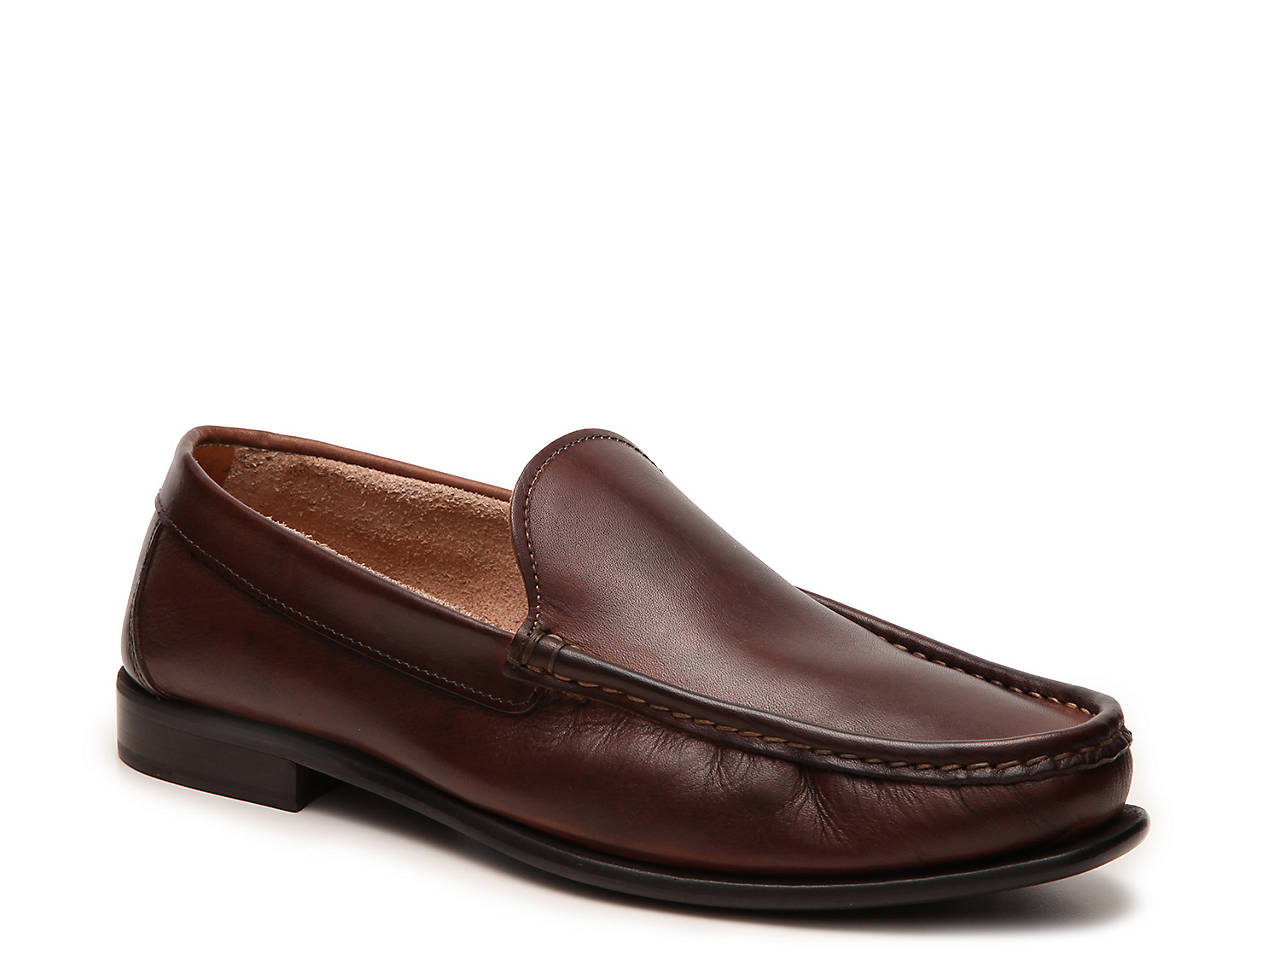 Kenneth Cole Tan Zone Loafer Mens